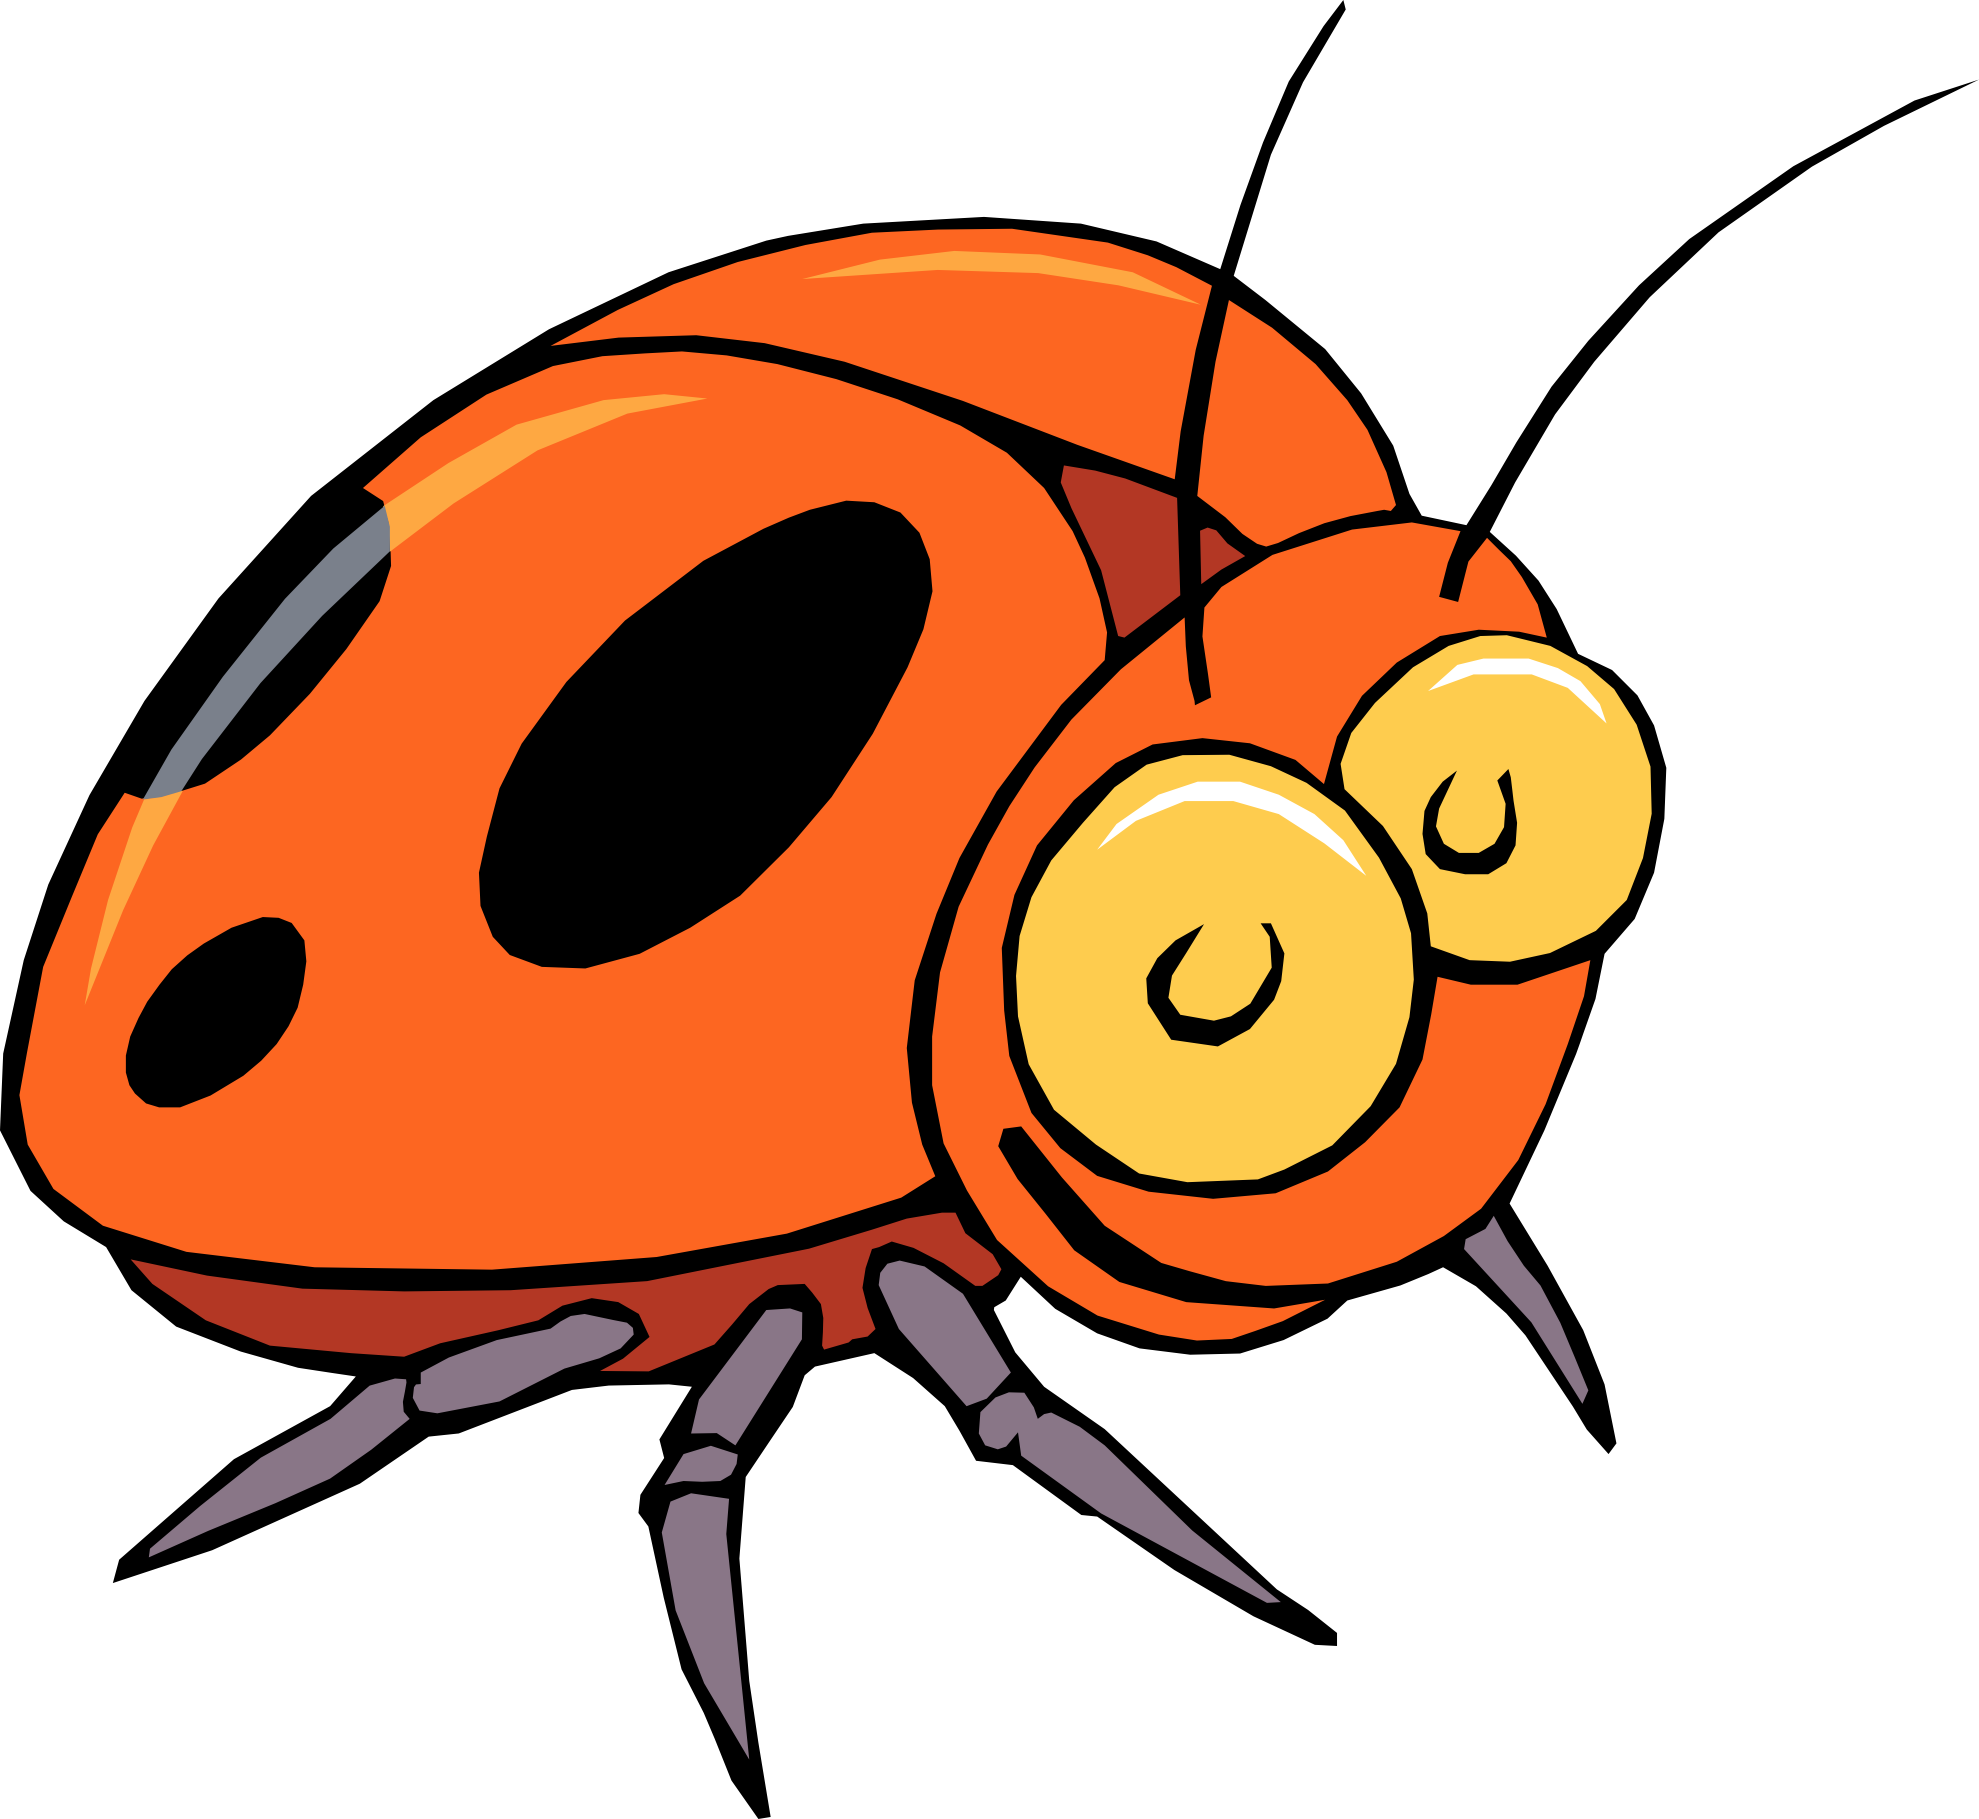 Bugs And Insects Clipart - Clipart Kid